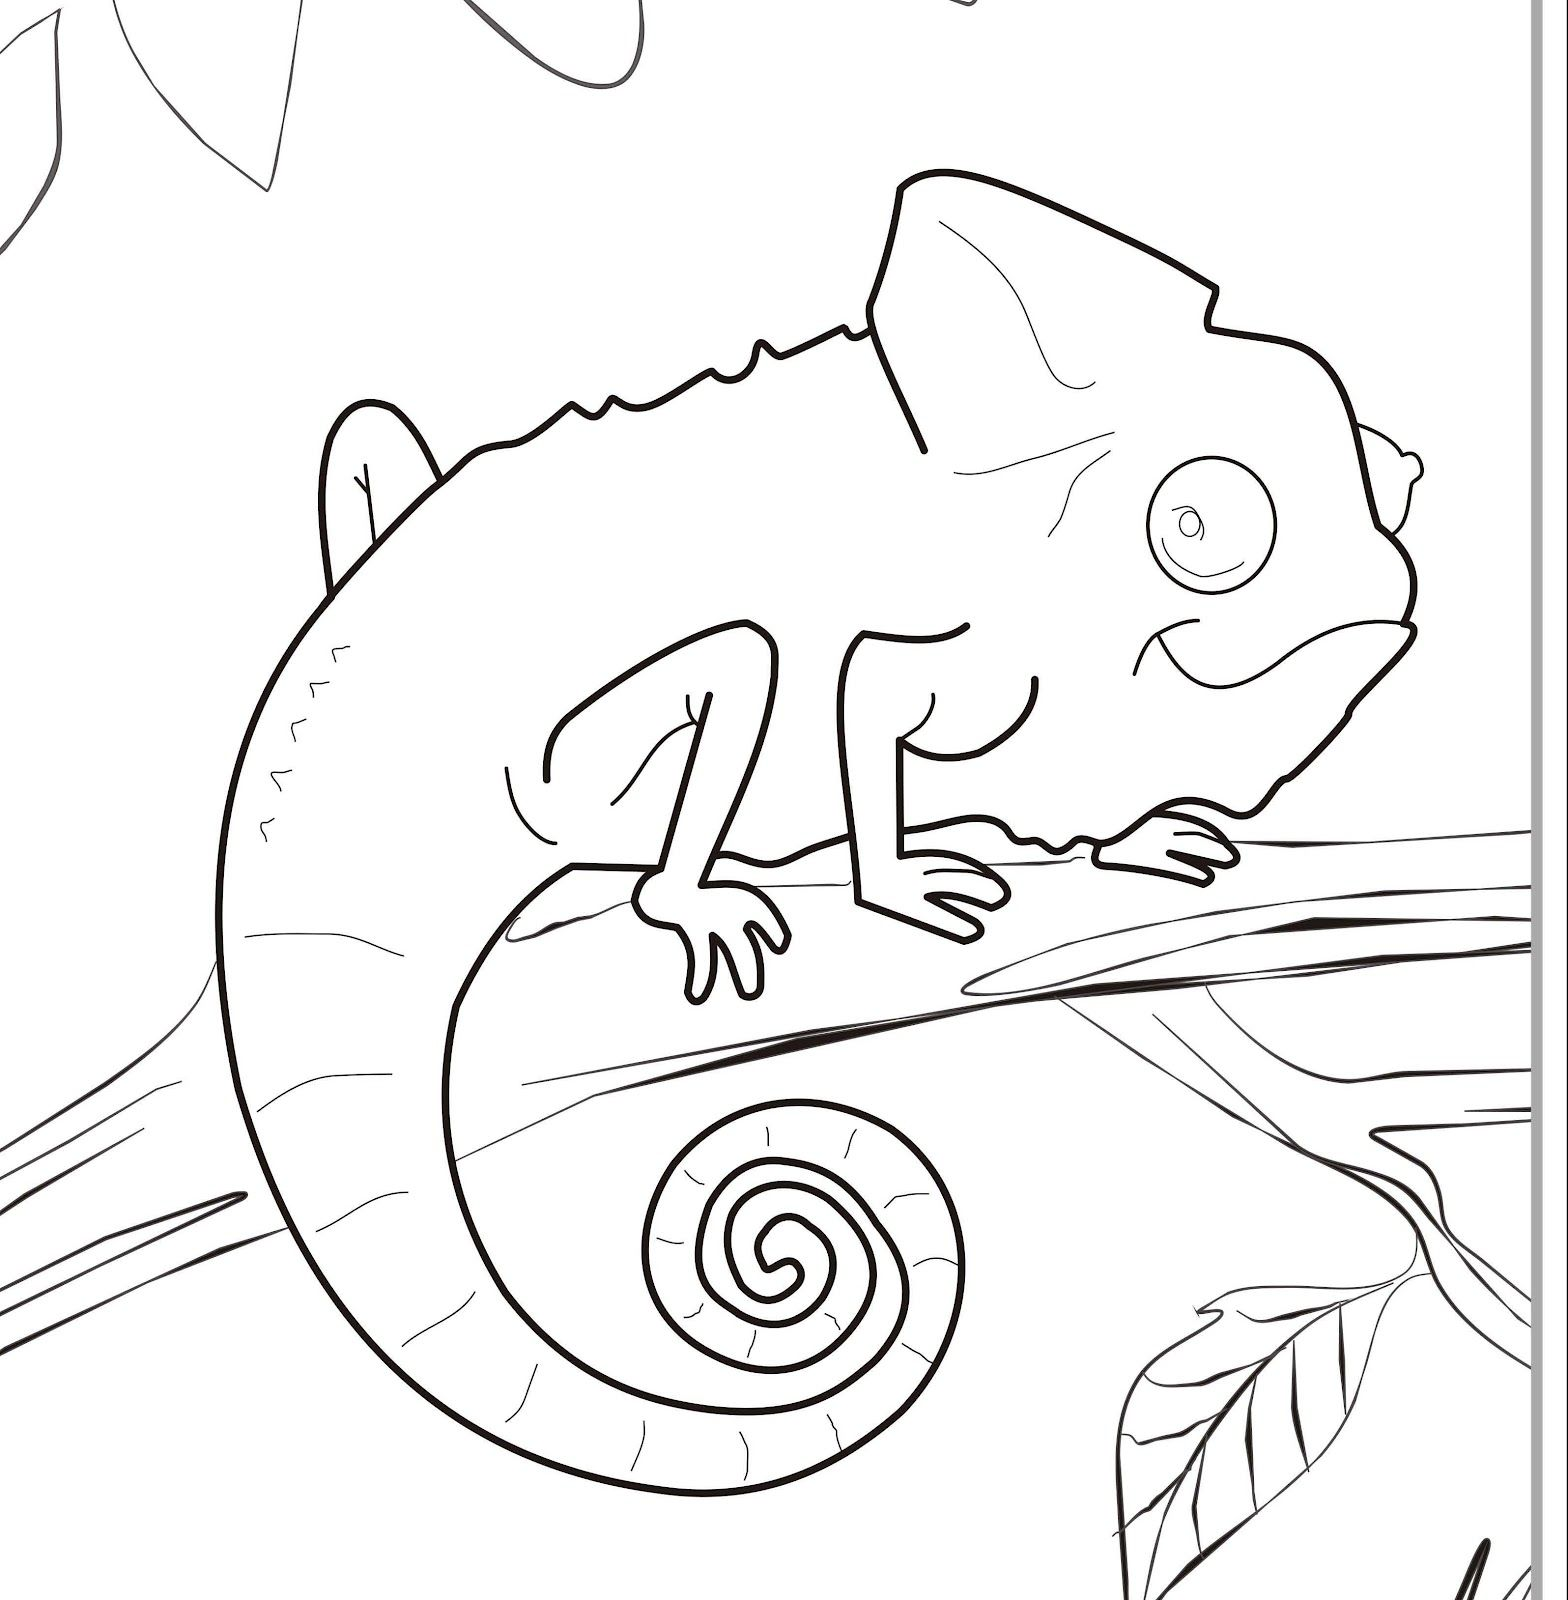 coloring book camilion | Chameleon Coloring Pages To Printable ...